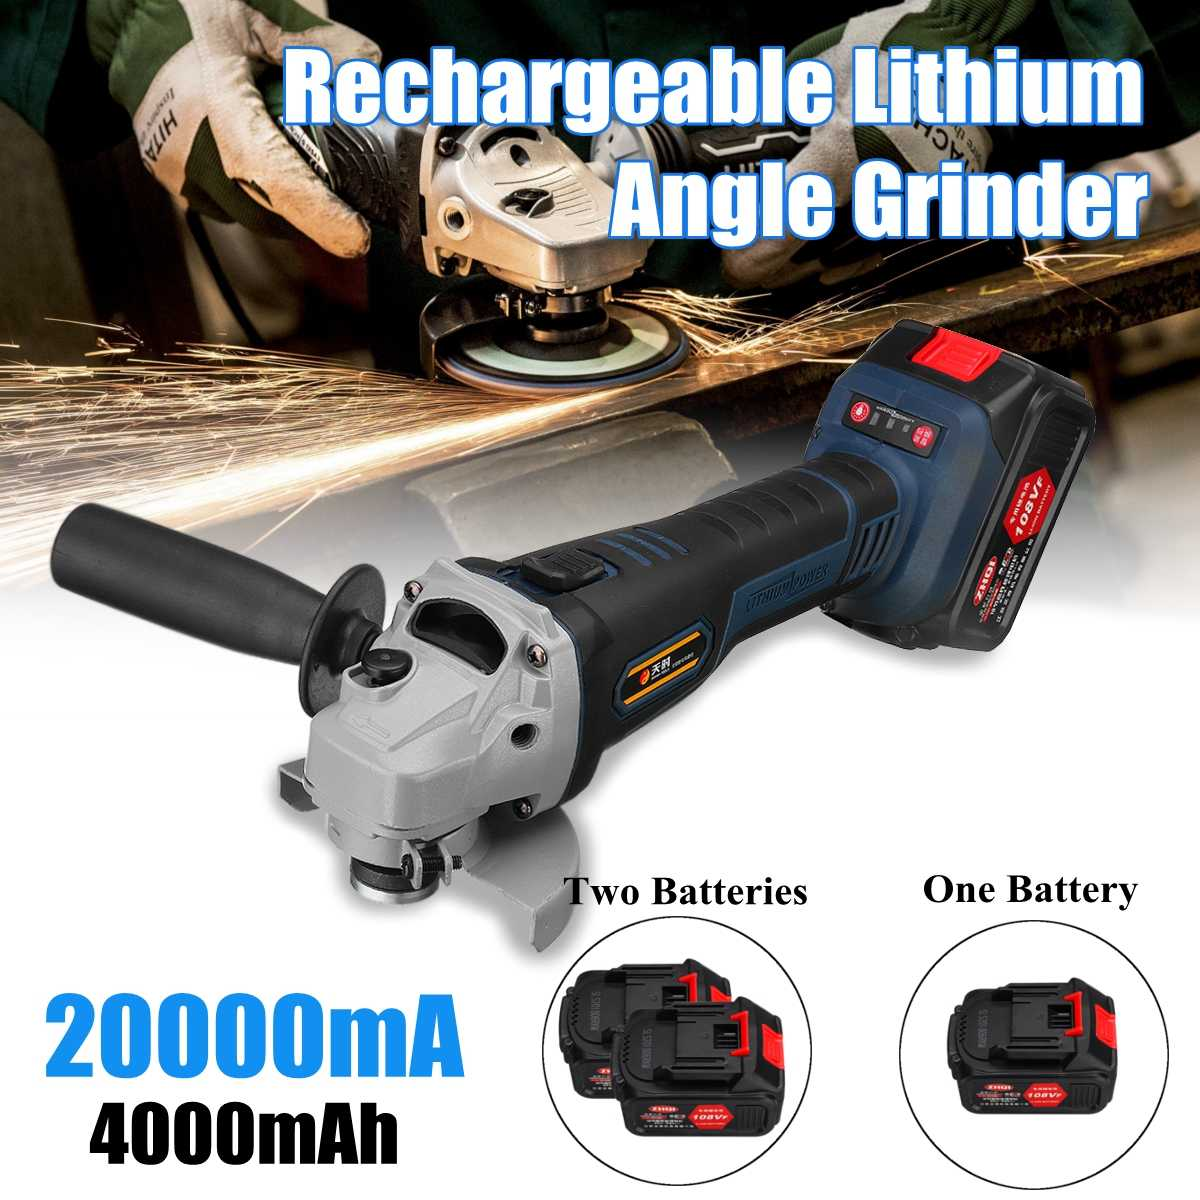 108VF 4000mah 20000mA Cordless Electric Angle Grinder Polisher 110V~220V Machine With 2 Rechargeable Lithium Battery WrenchTool